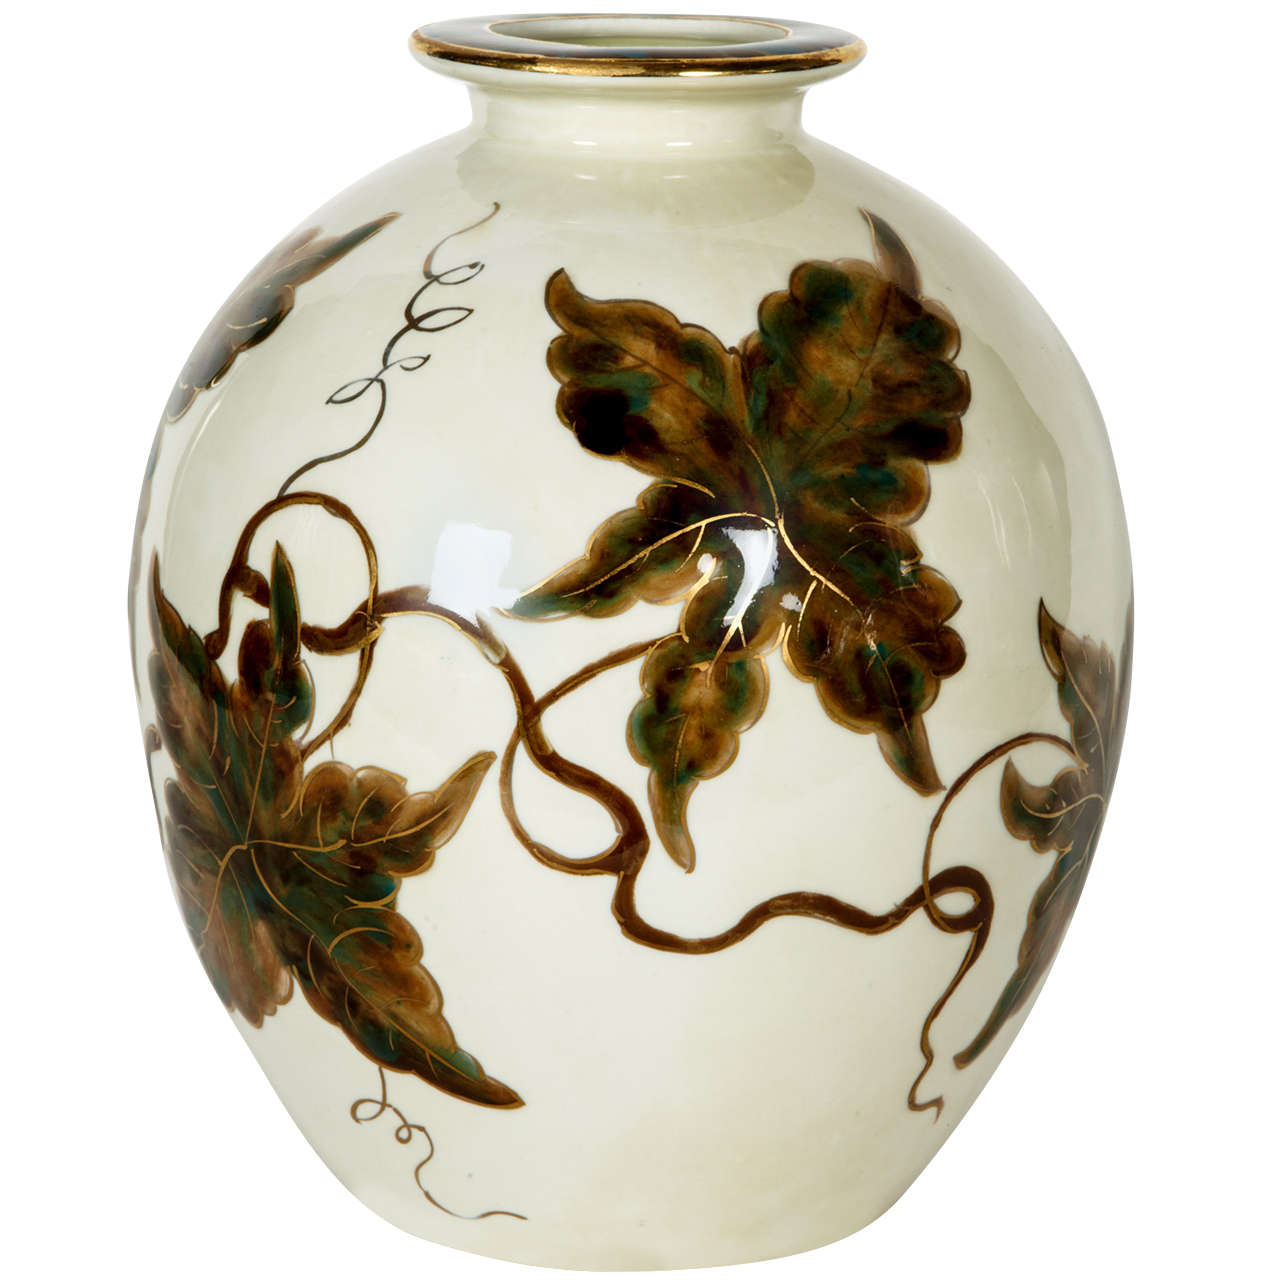 Nice Vase in Limoges Porcelain by Camille Tharaud